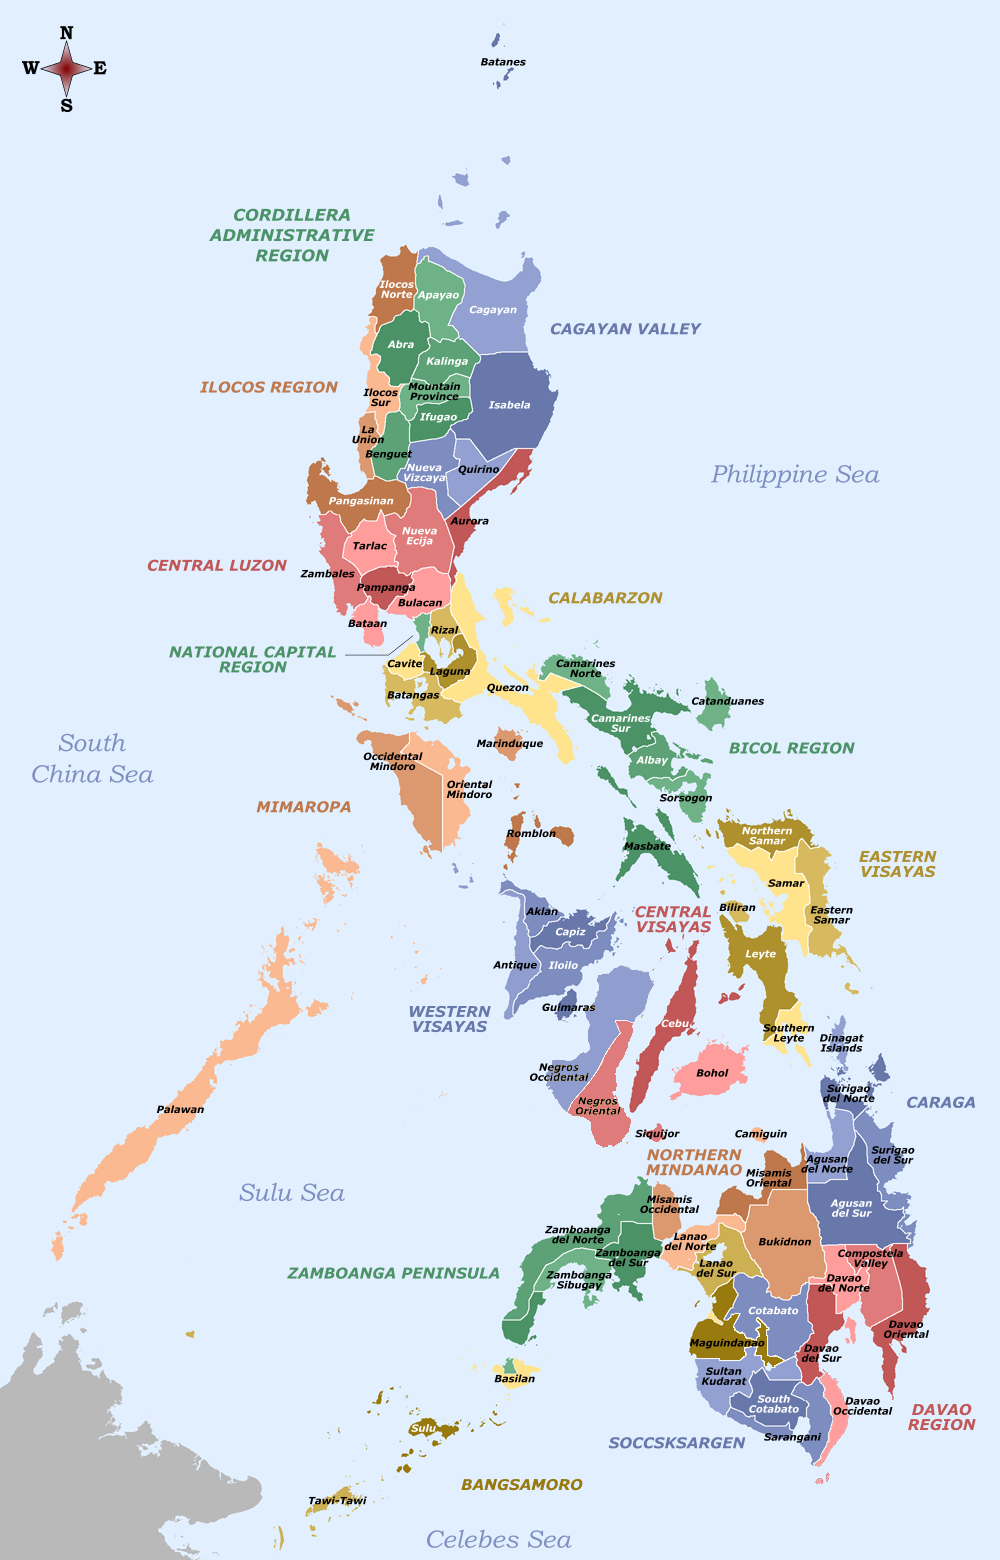 File:Labelled map of the Philippines.